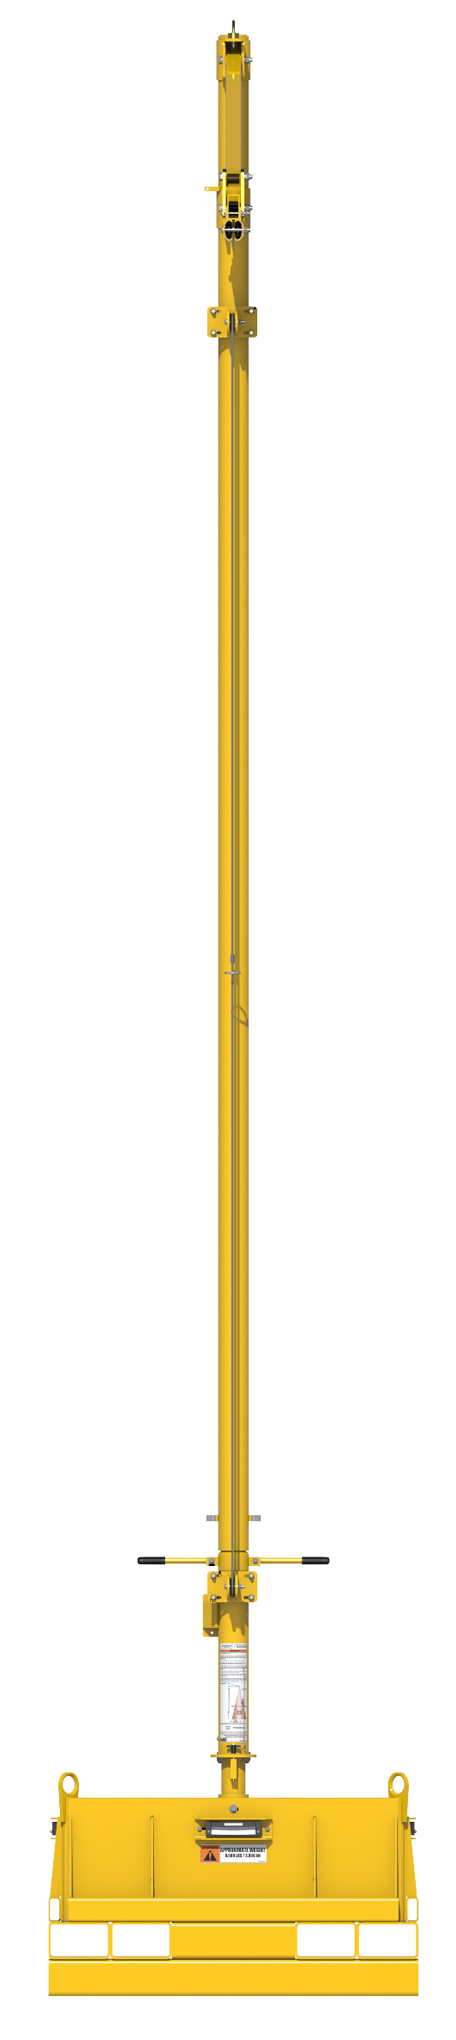 FlexiGuard Portable Counterweighted Jib Fall Arrest System, Back View